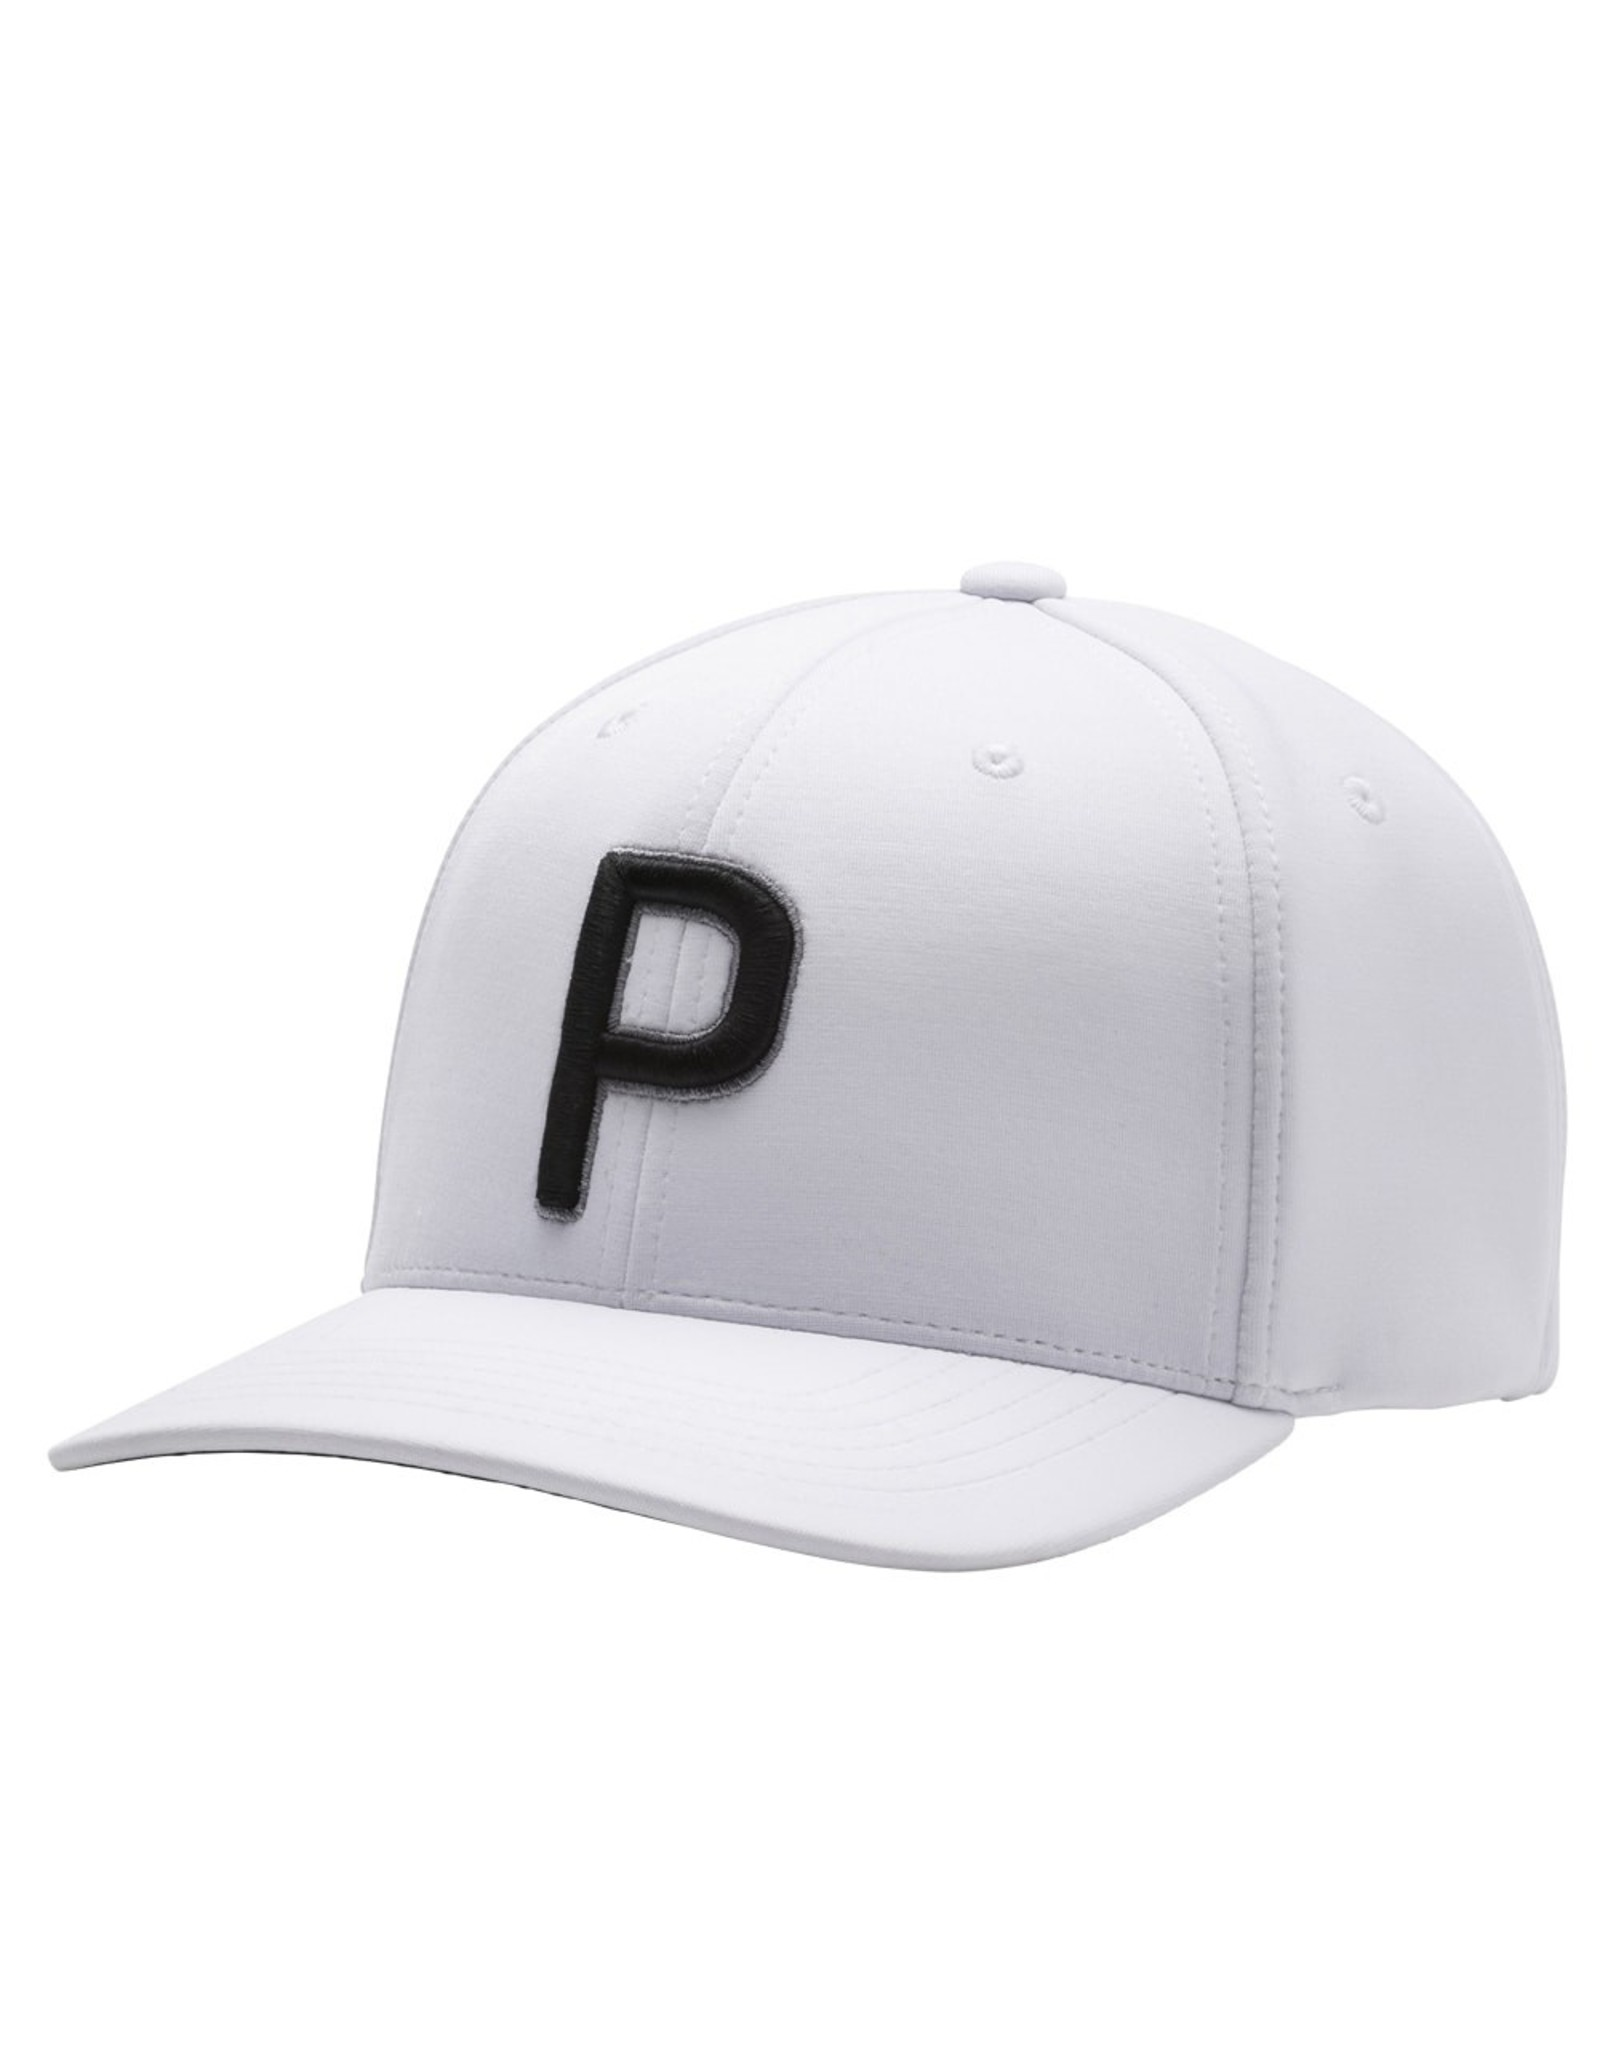 Puma Golf Puma Men's Hat P110 Snapback